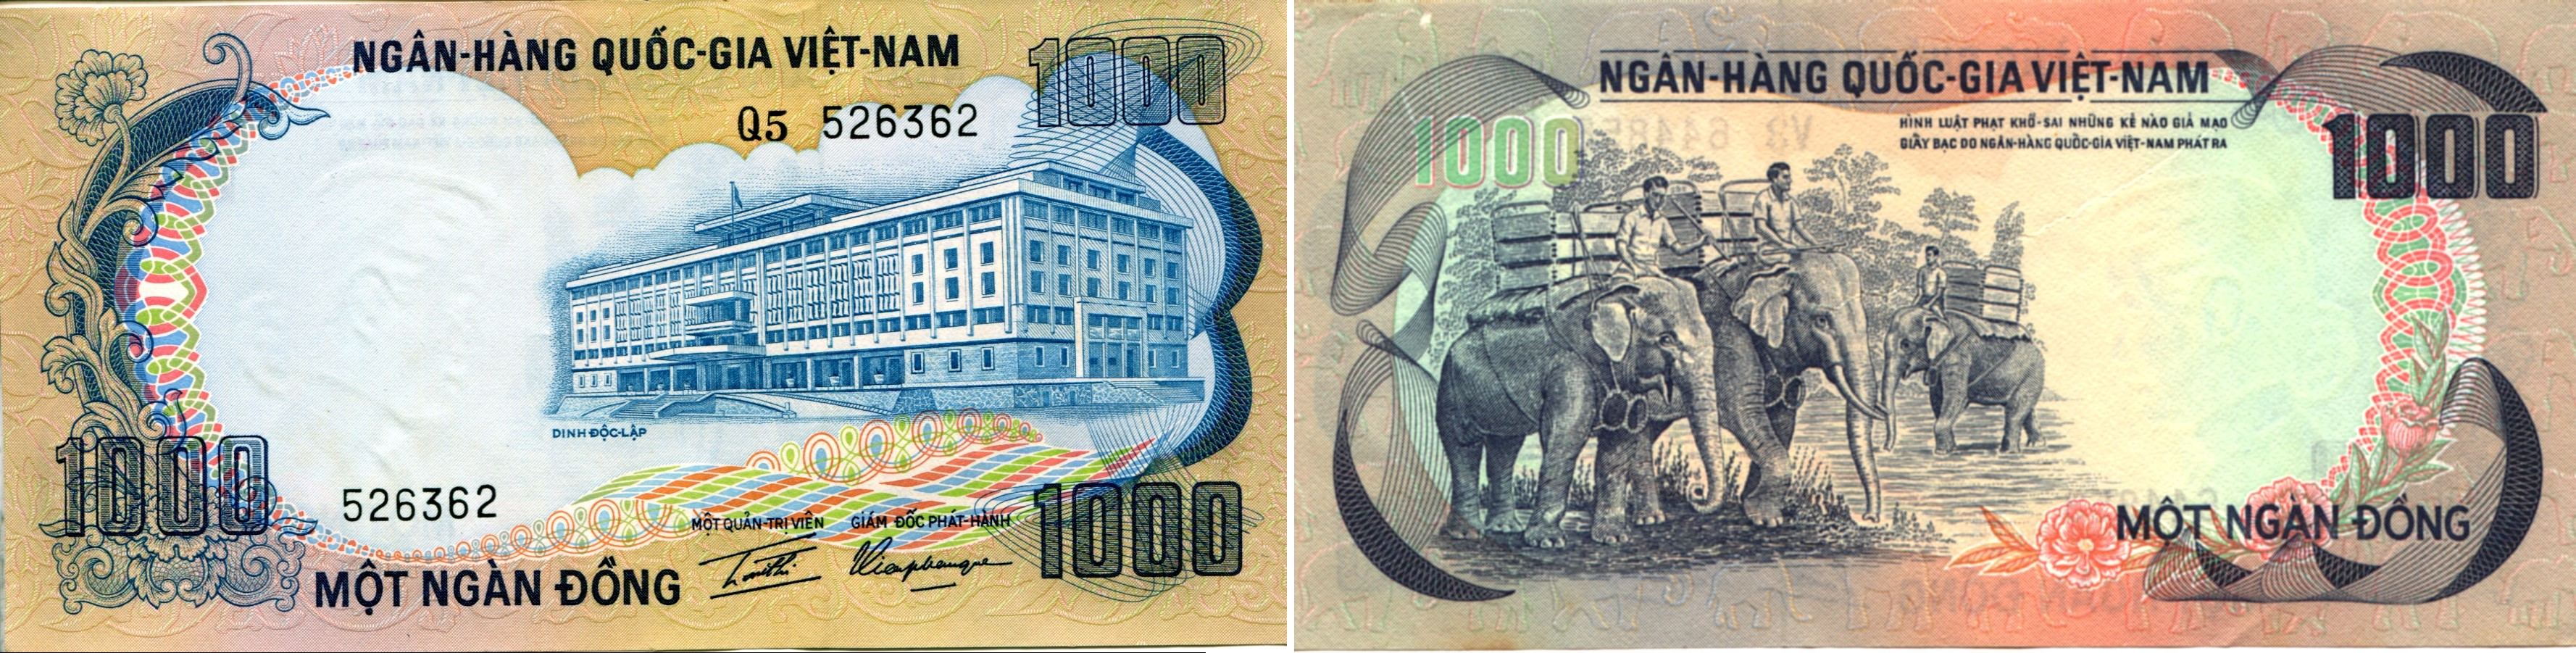 SOUTH VIETNAM 1,000 1000 Dong 1972 P-34 Elephant UNC Uncirculated